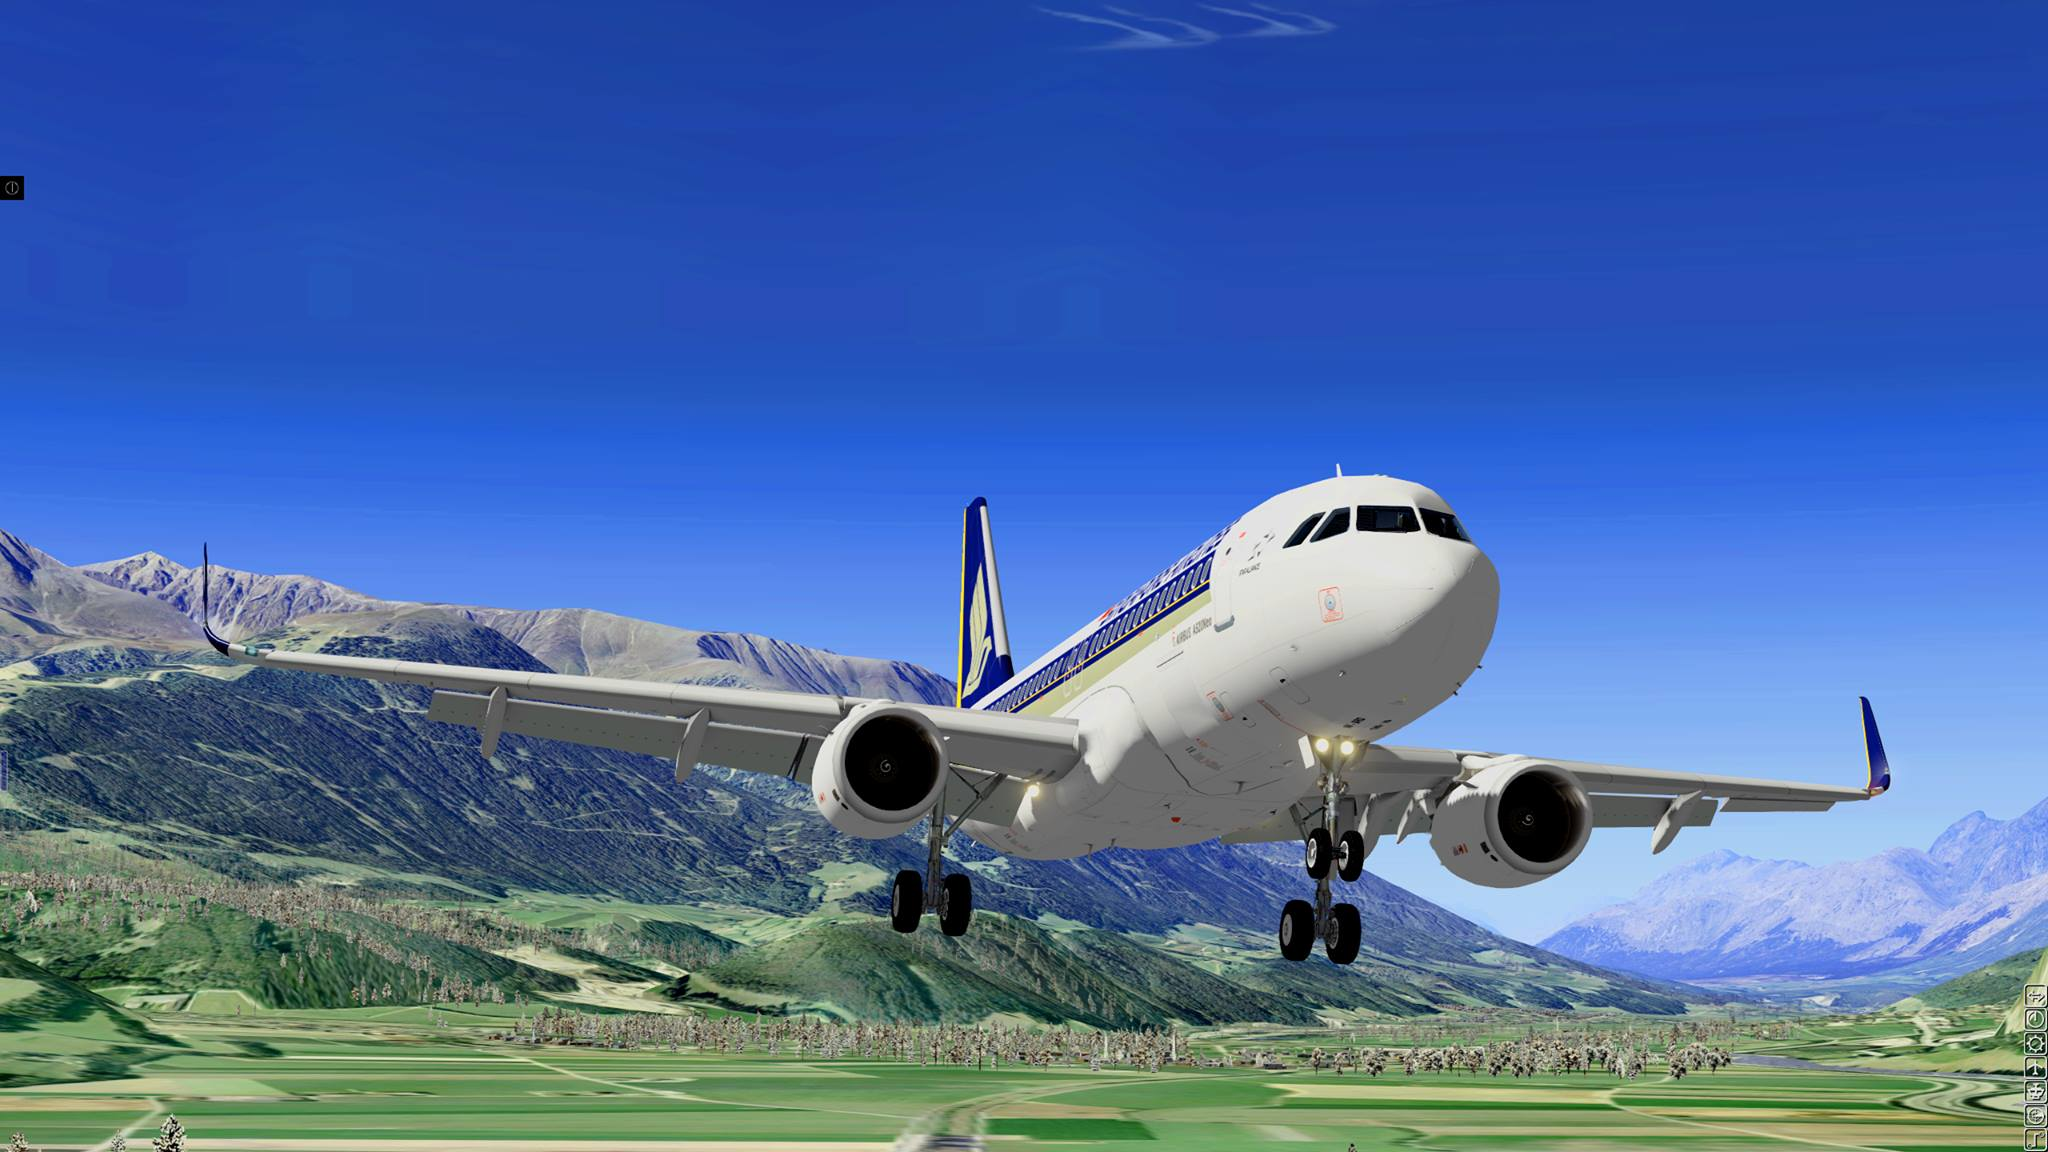 Animated Wallpaper Windows 8 Free Jd320 X Plane 10 11 Add On